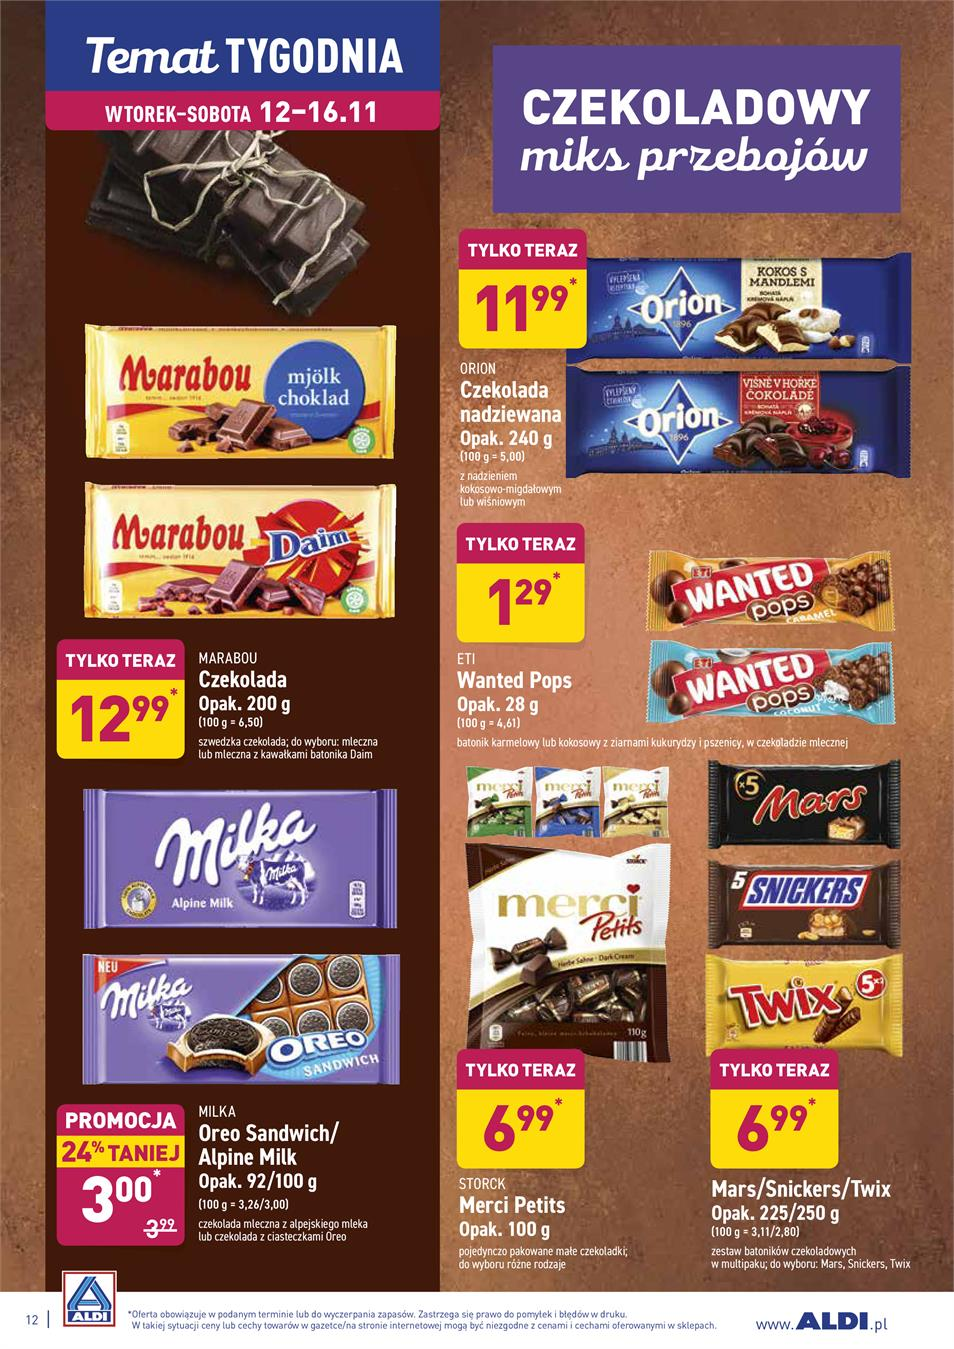 Gazetka ALDI SP Z O O  nr 12 od 2019-11-12 do 2019-11-16